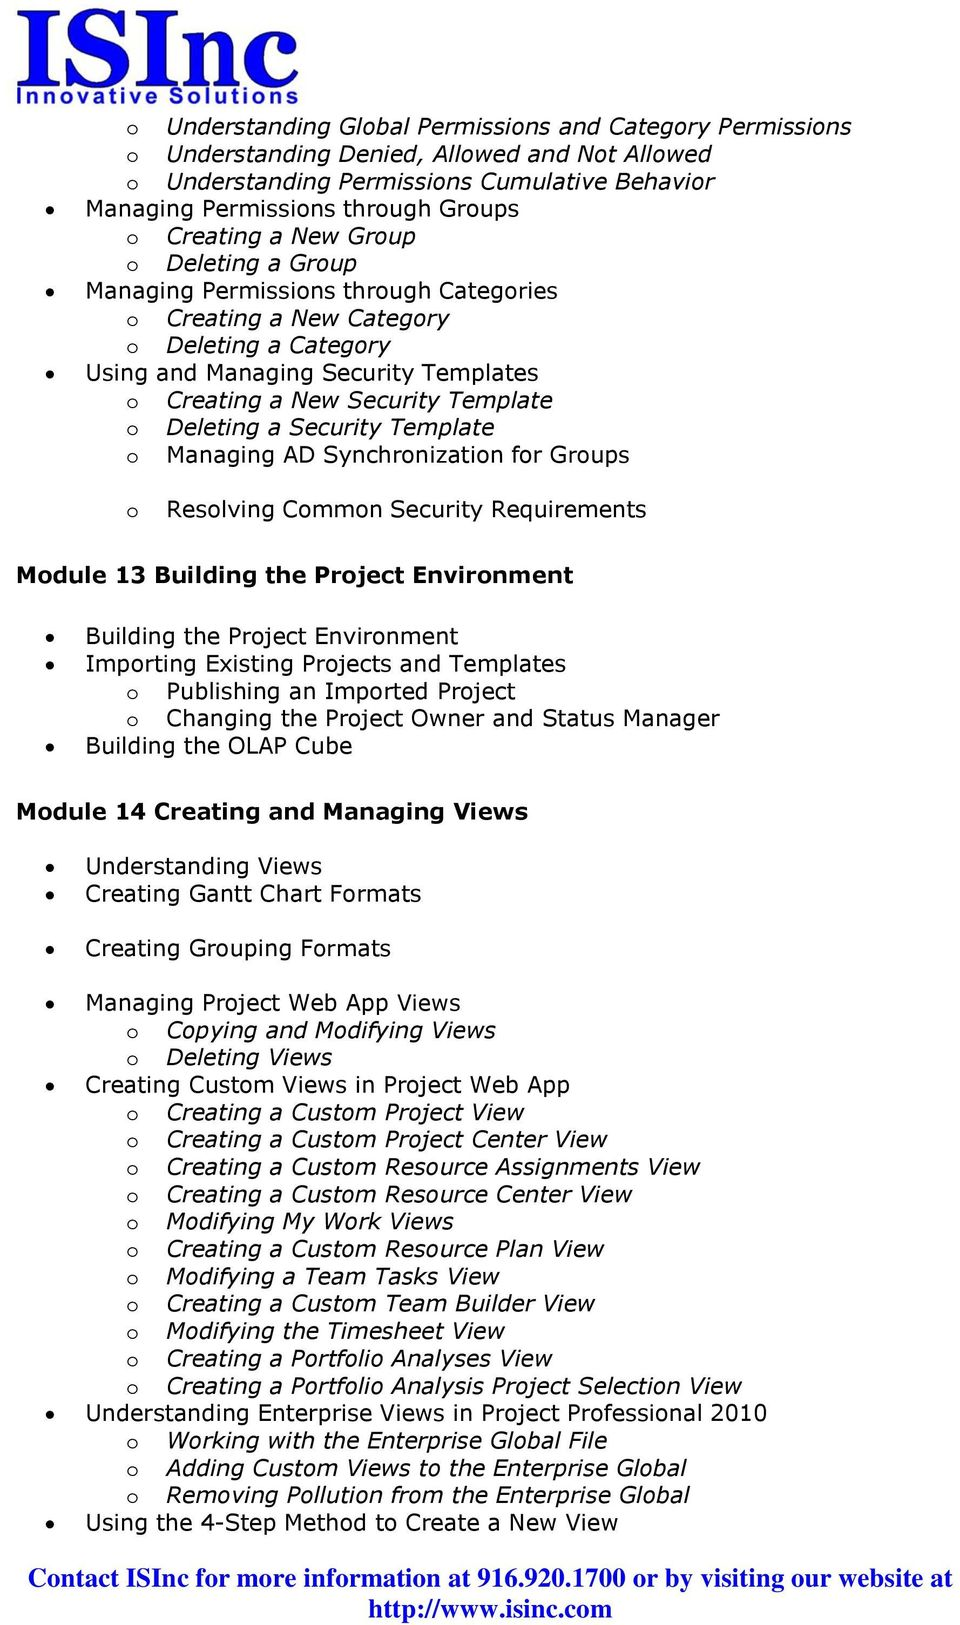 Template o Deleting a Security Template o Managing AD Synchronization for Groups o Resolving Common Security Requirements Module 13 Building the Project Environment Building the Project Environment